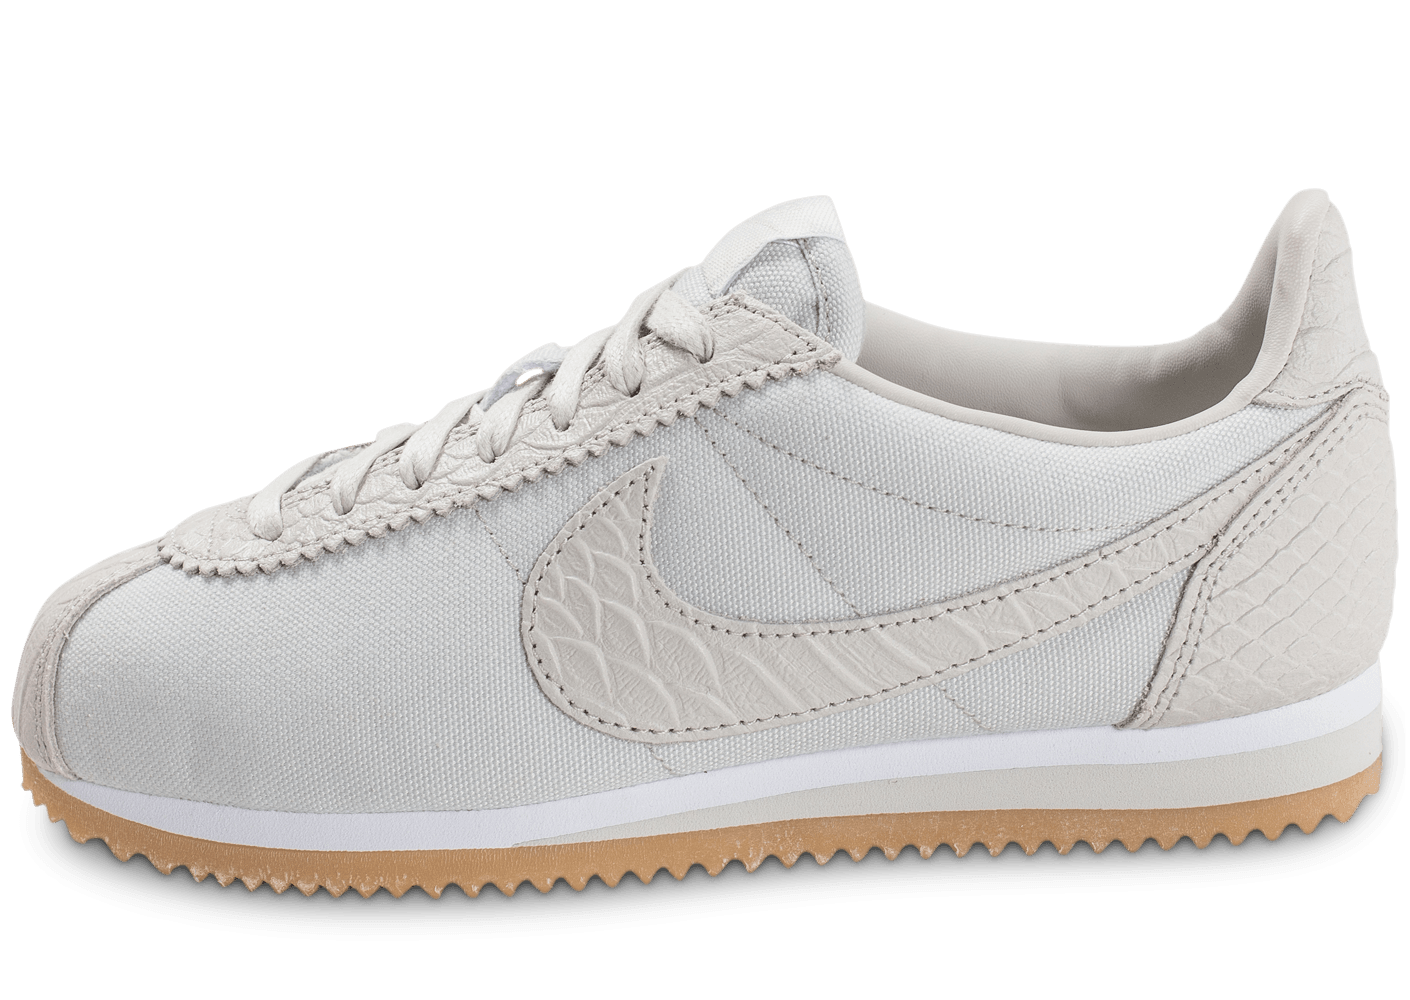 Cortez Se W Light Bone Nike Baskets/Running FemmeNike sJF5jIlV